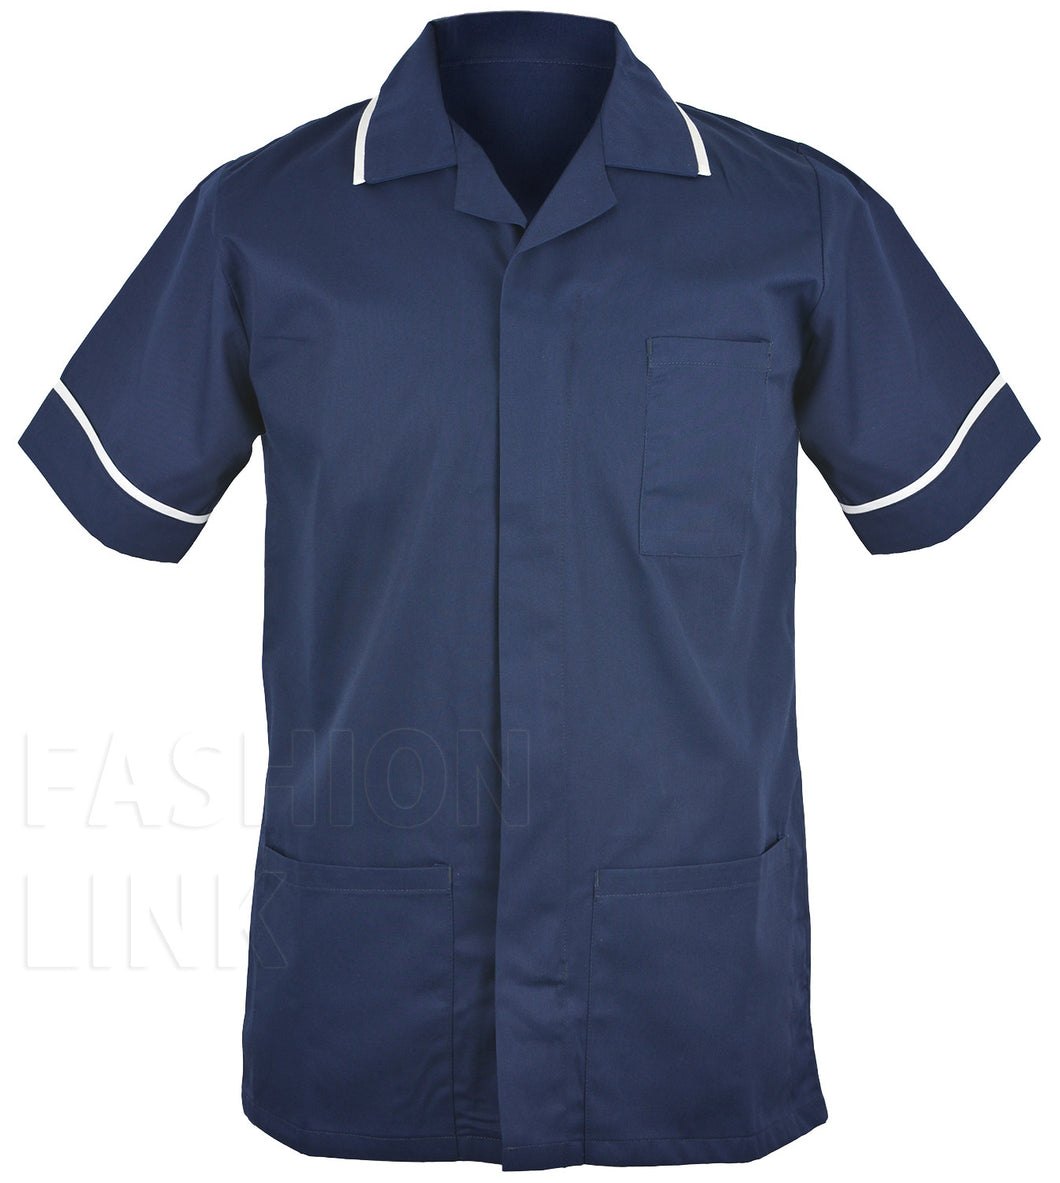 Male Healthcare Tunic FNMT01 Navy/White